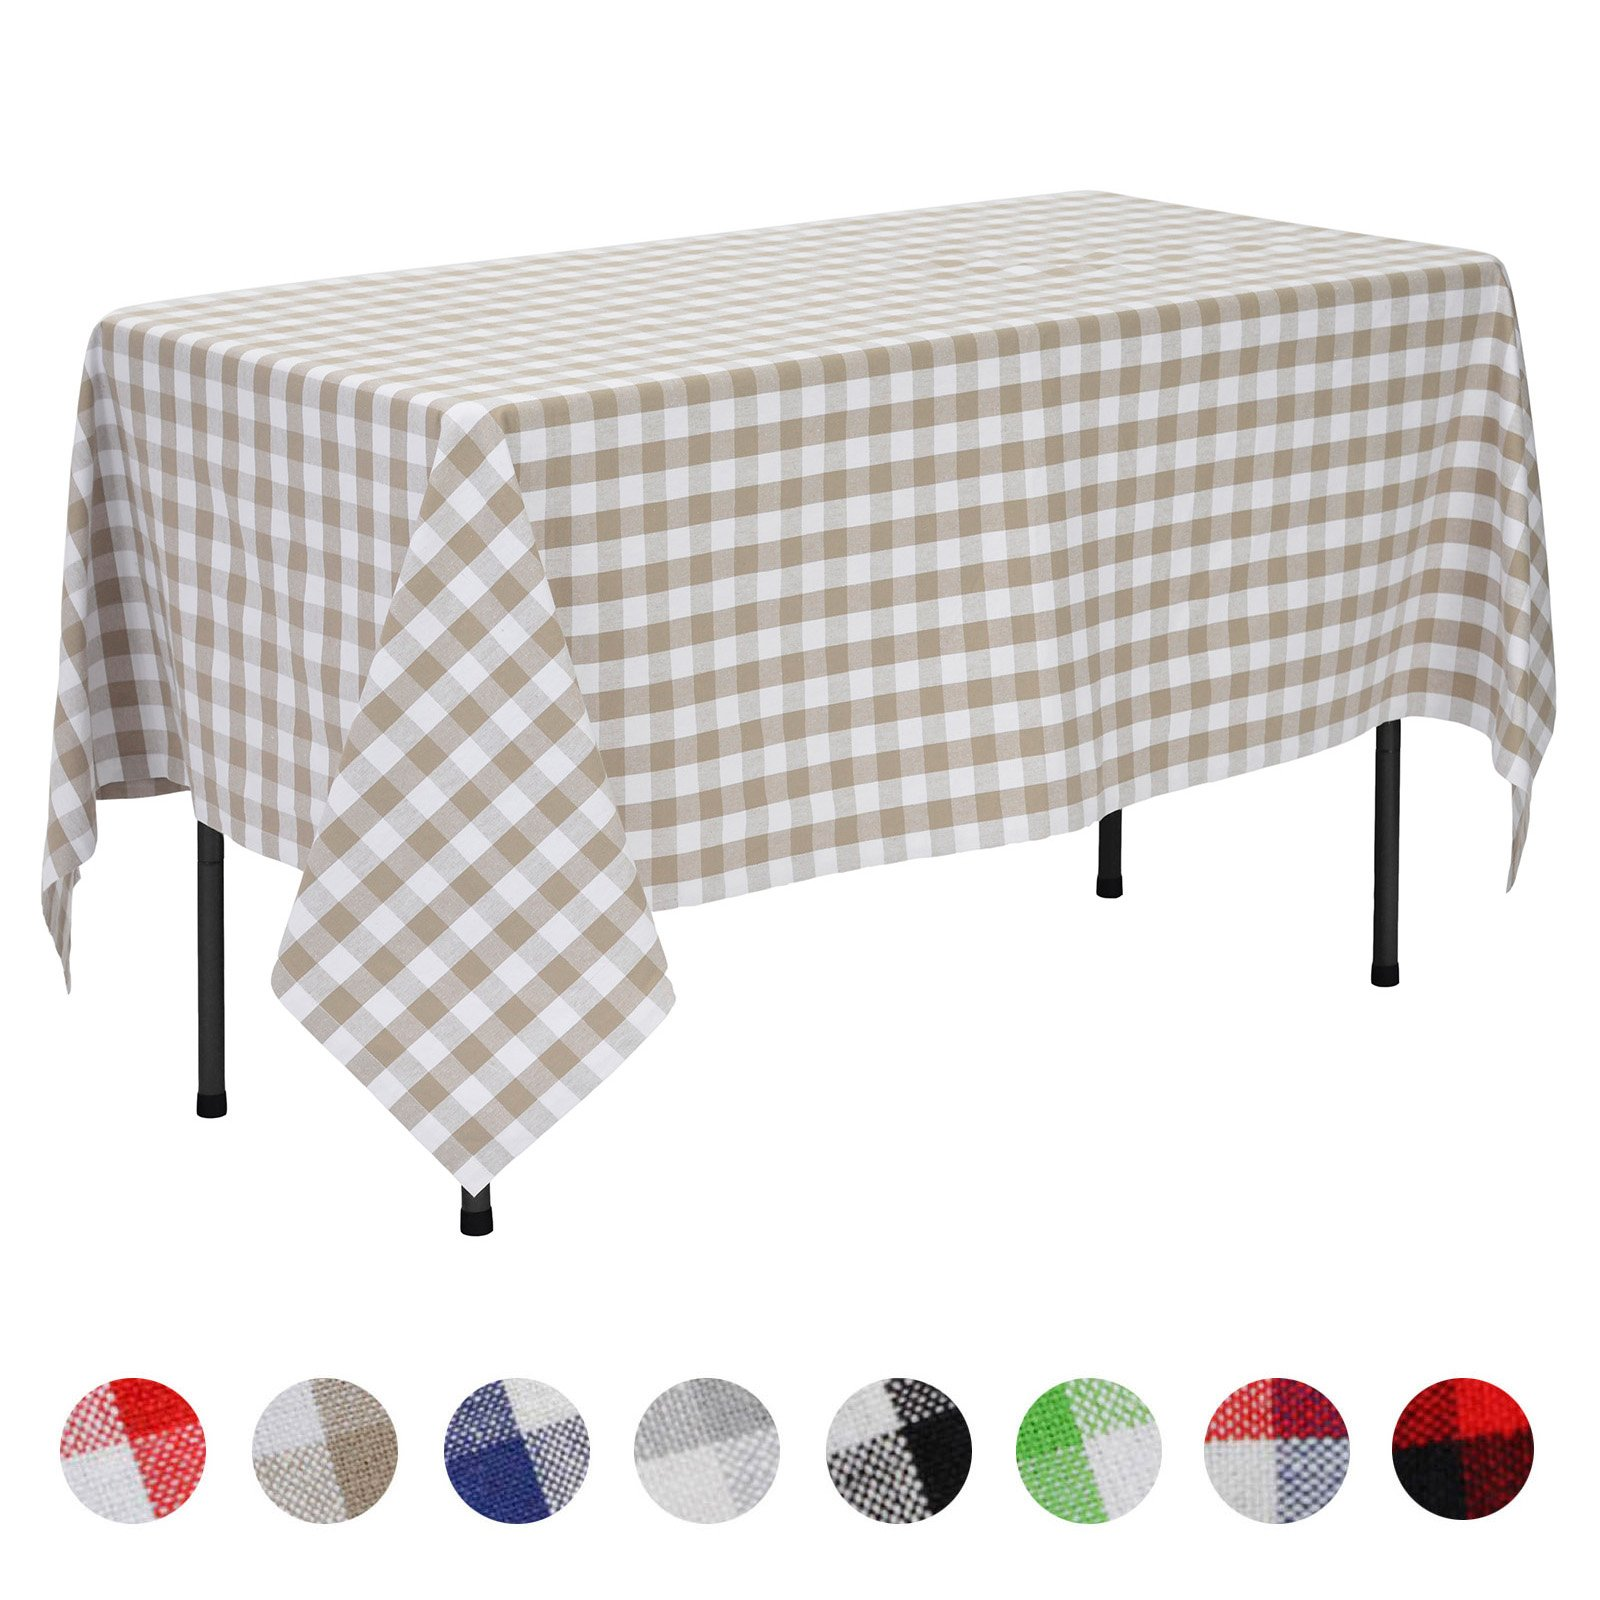 VEEYOO Rectangular Plaid Check Tablecloth Gingham 100% Cotton for Home Kitchen Party Indoor or Outdoor Use 60 x 84 inch (Seats 6 to 8 People), Tan & White